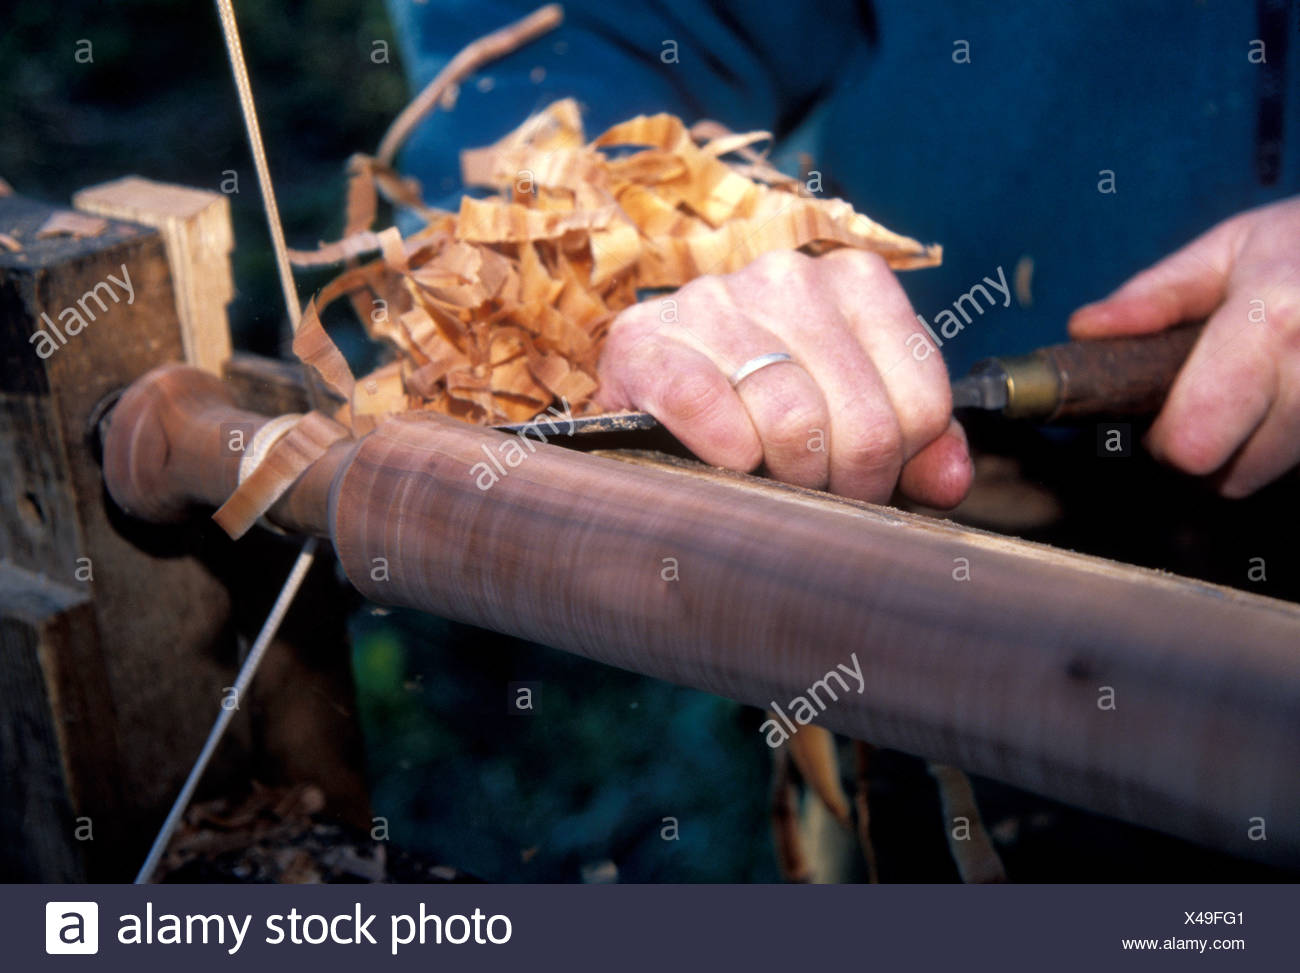 Mike Abbott a coppice craftsman working with his pole lathe which is powered by his foot. - Stock Image